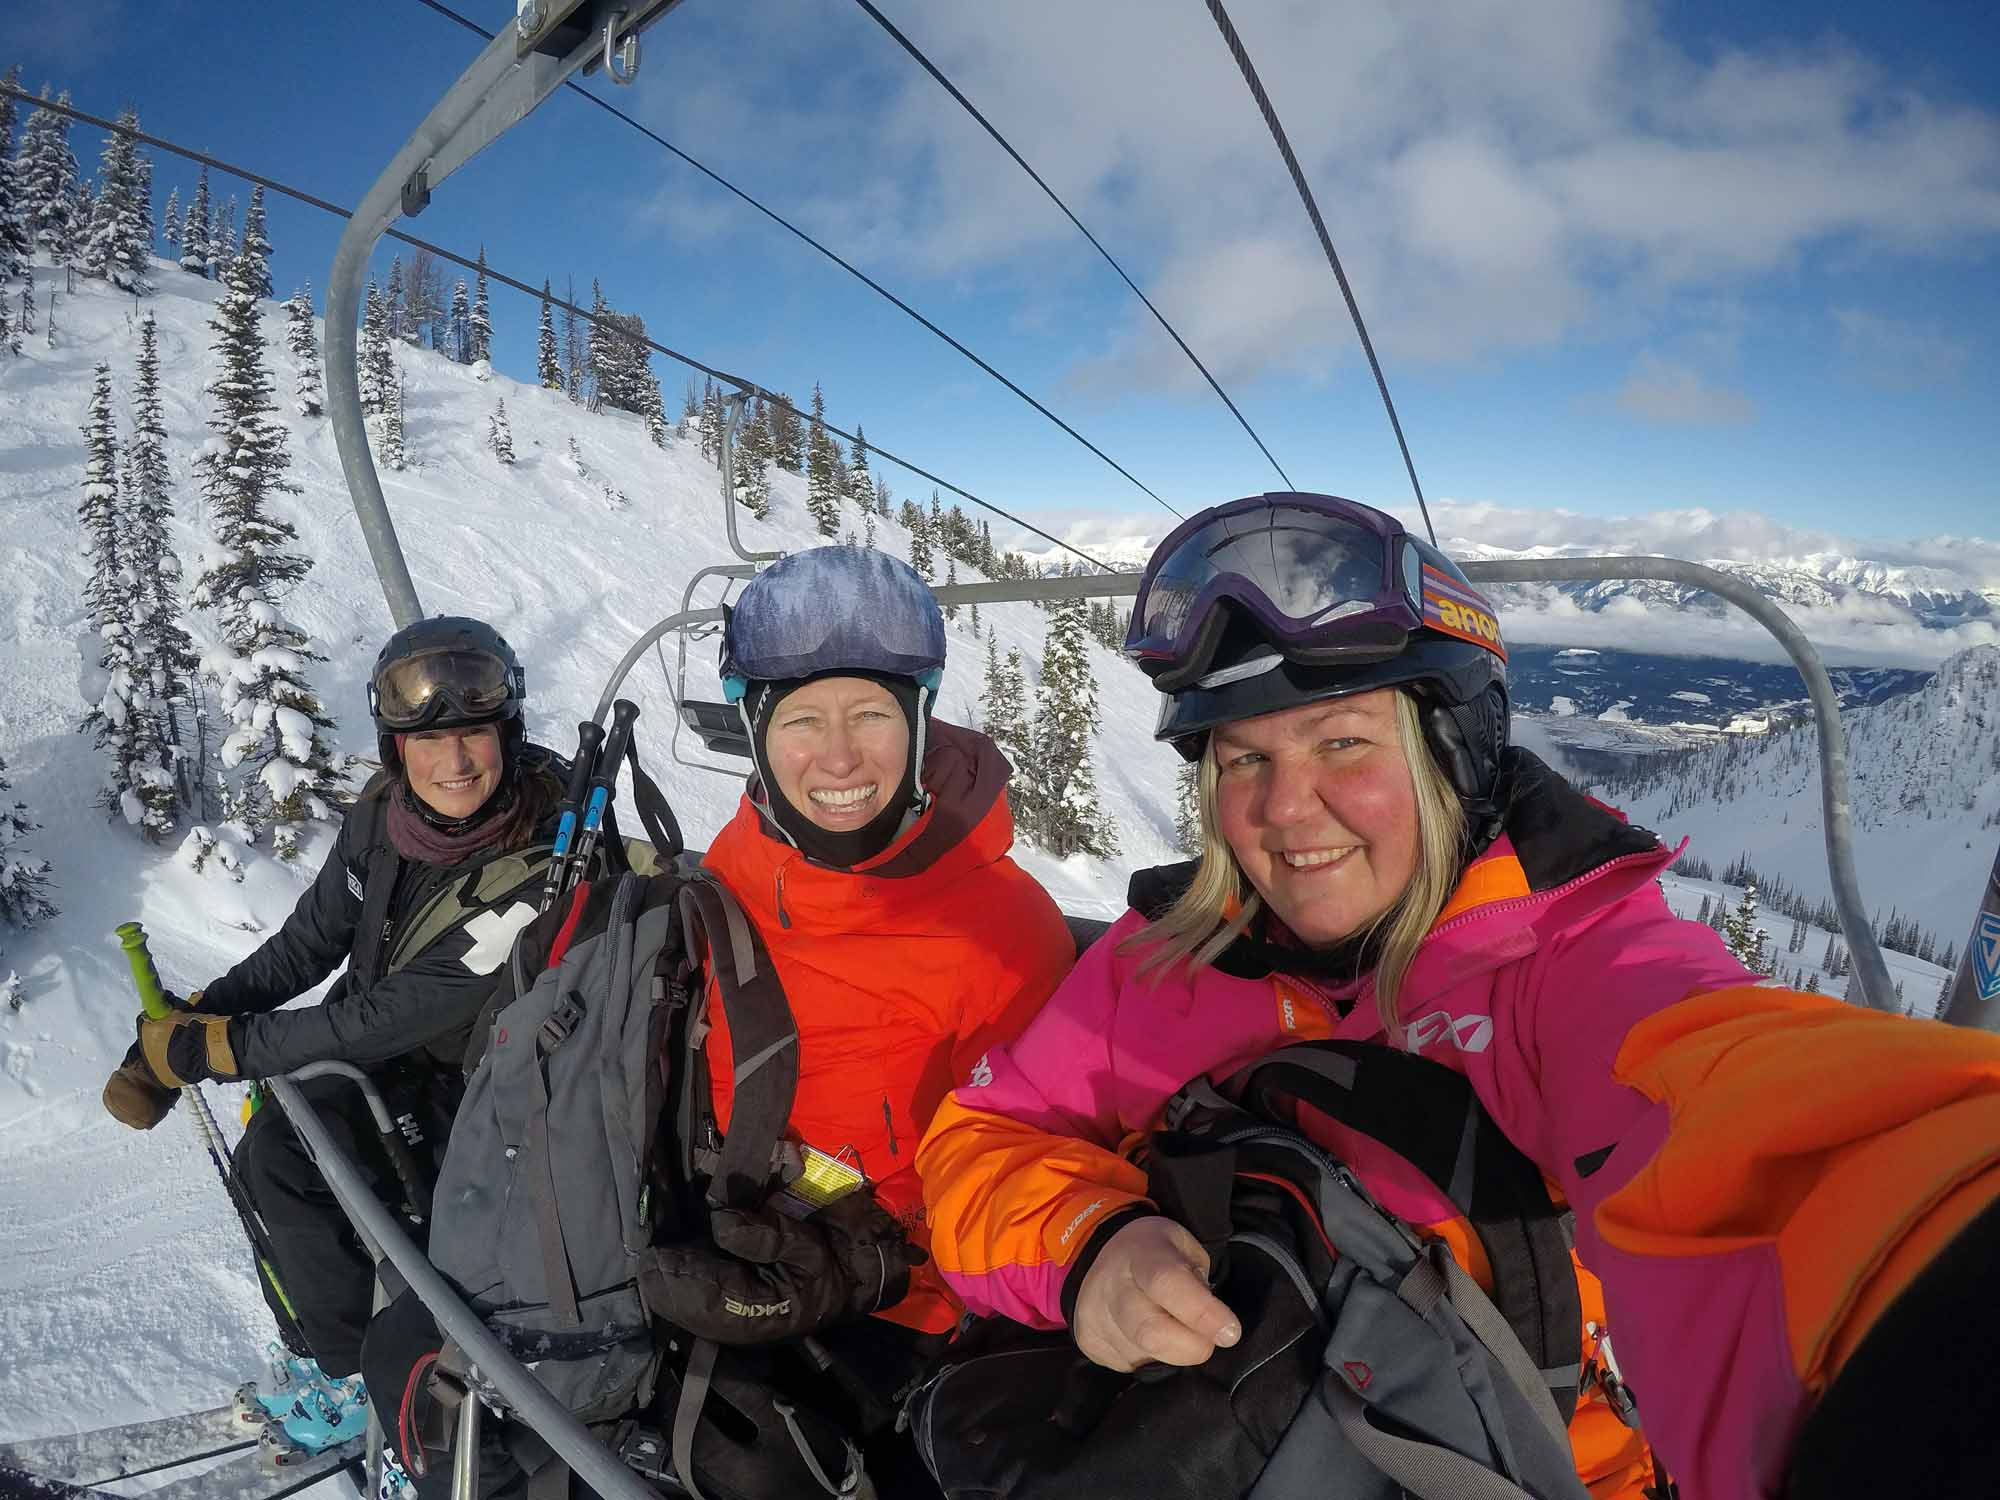 Into-the-Great-White-Open-Moms-Shred-Golden-BC-Allison-Kennedy-Davies-chairlift-selfie-Kicking-Horse